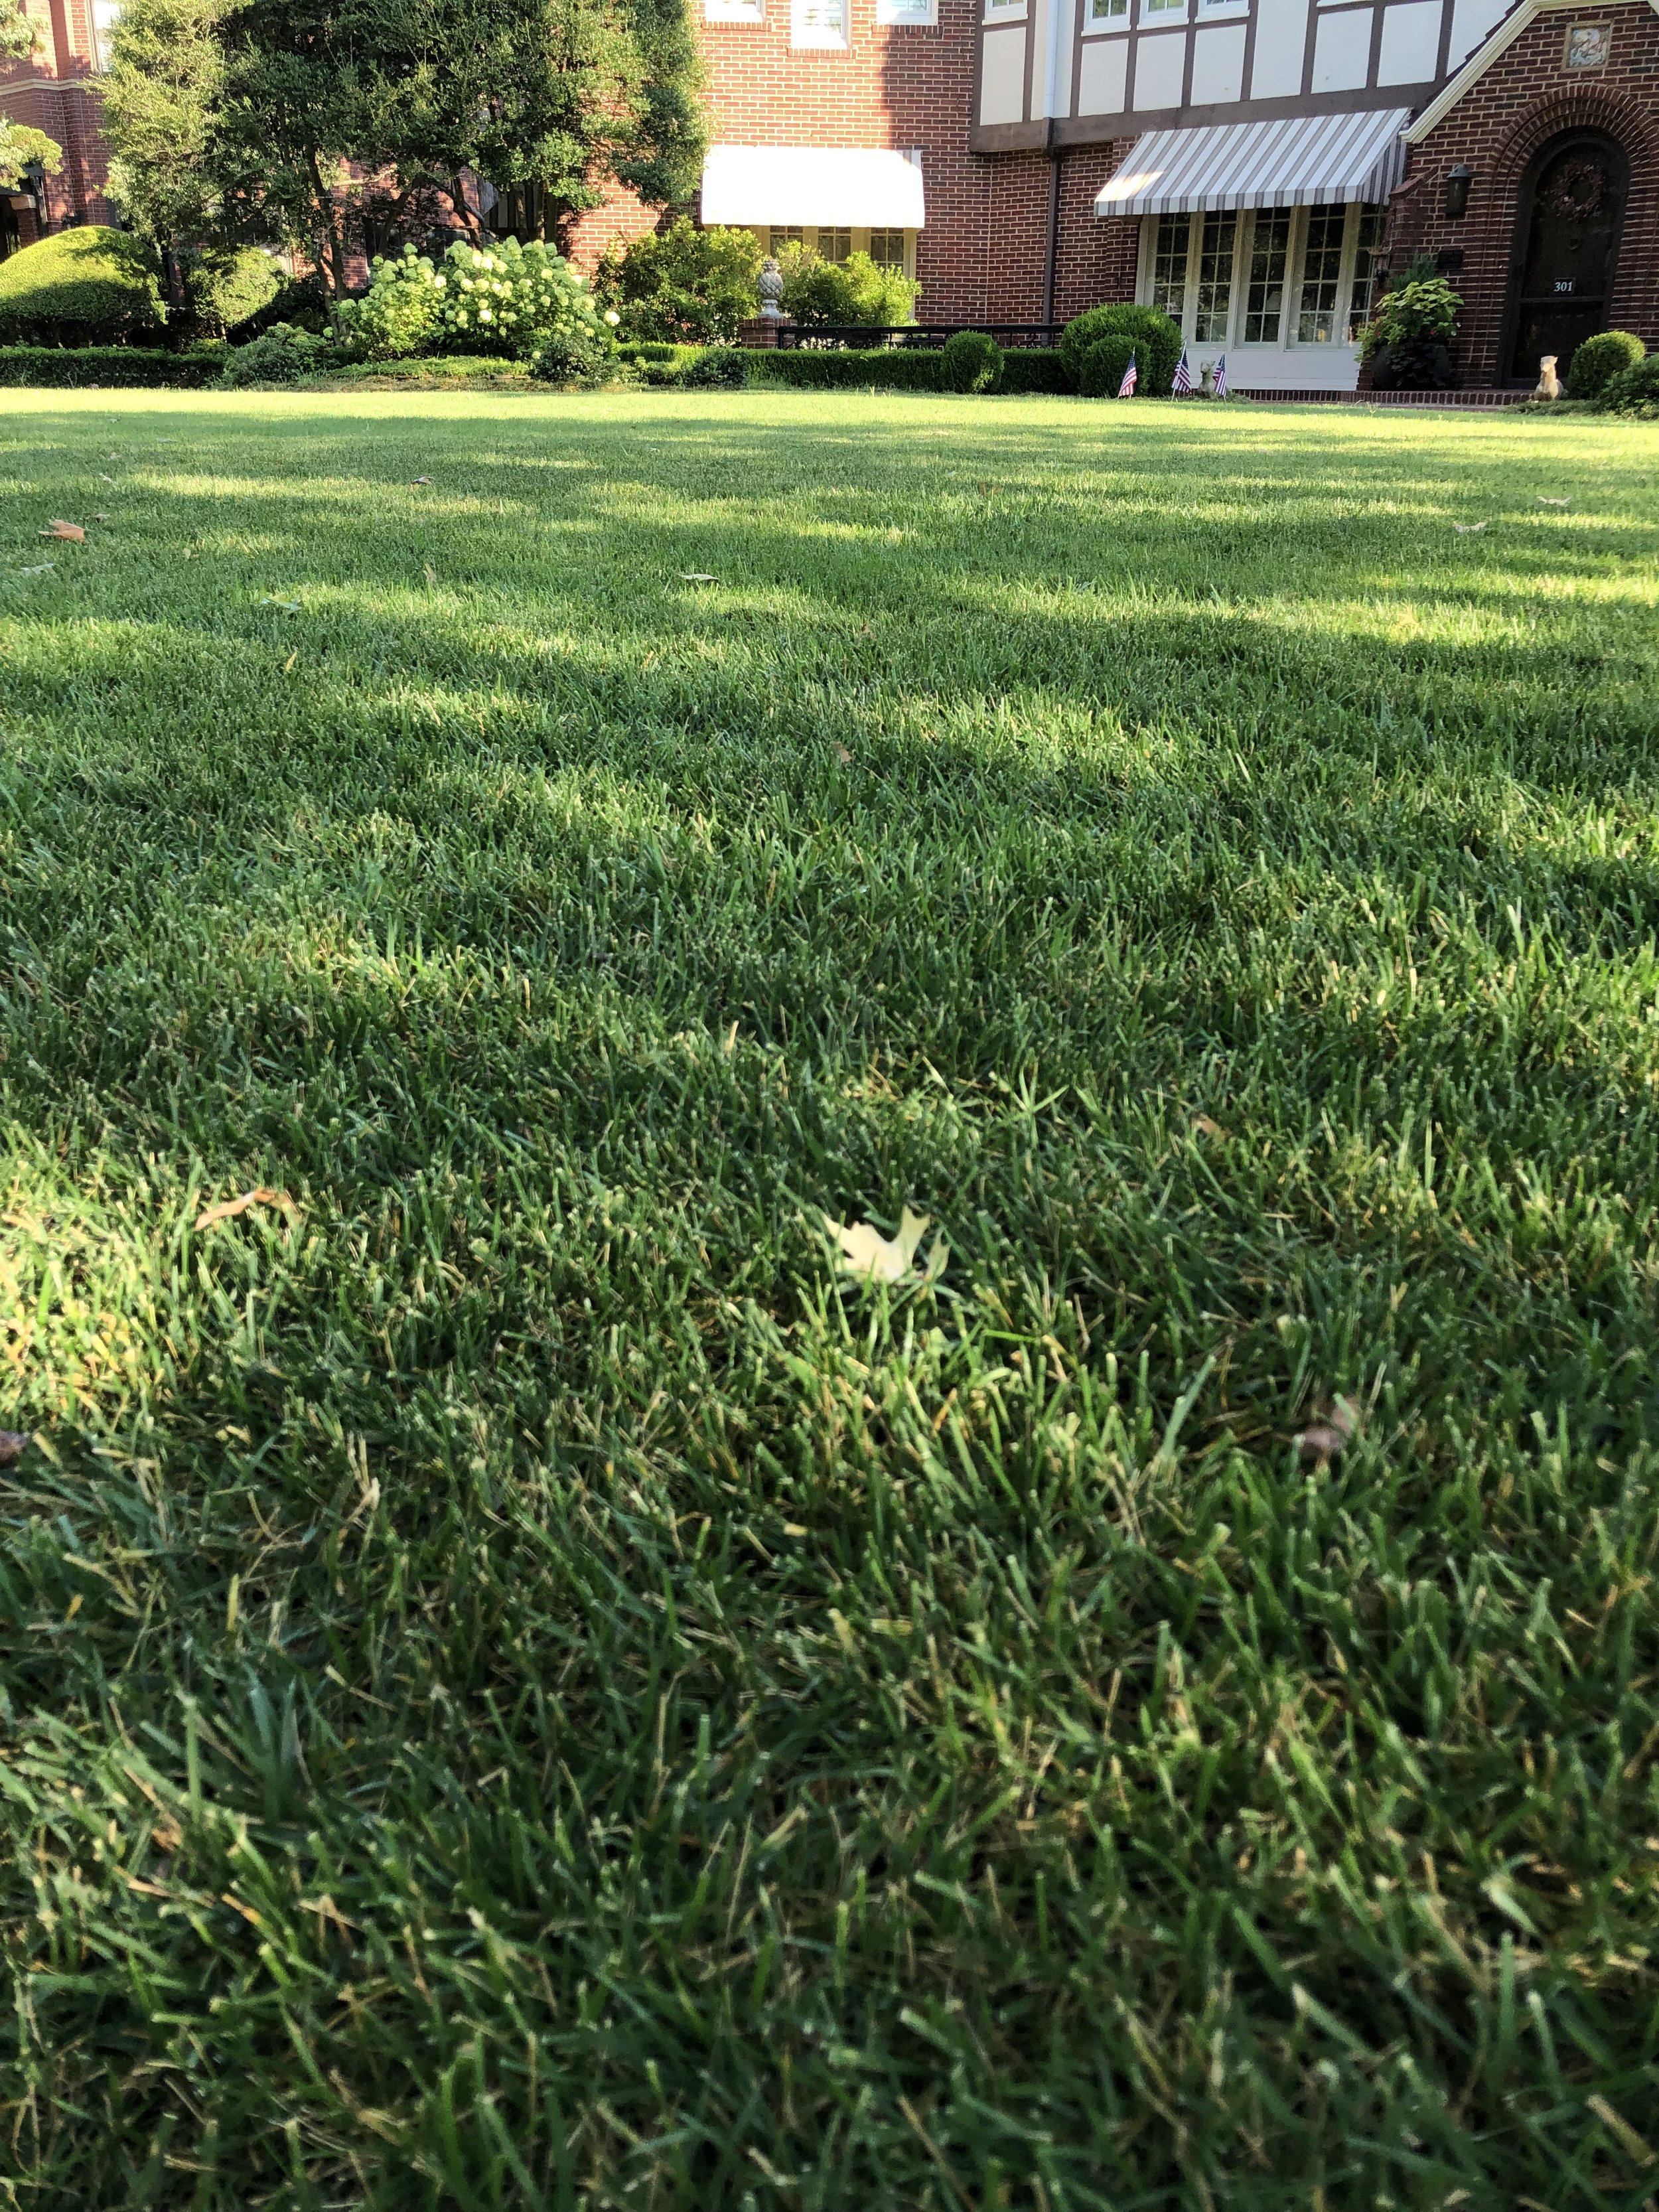 If your lawn receives less than 8 hours of direct sun light every day, then fescue is your best choice for a great lawn.